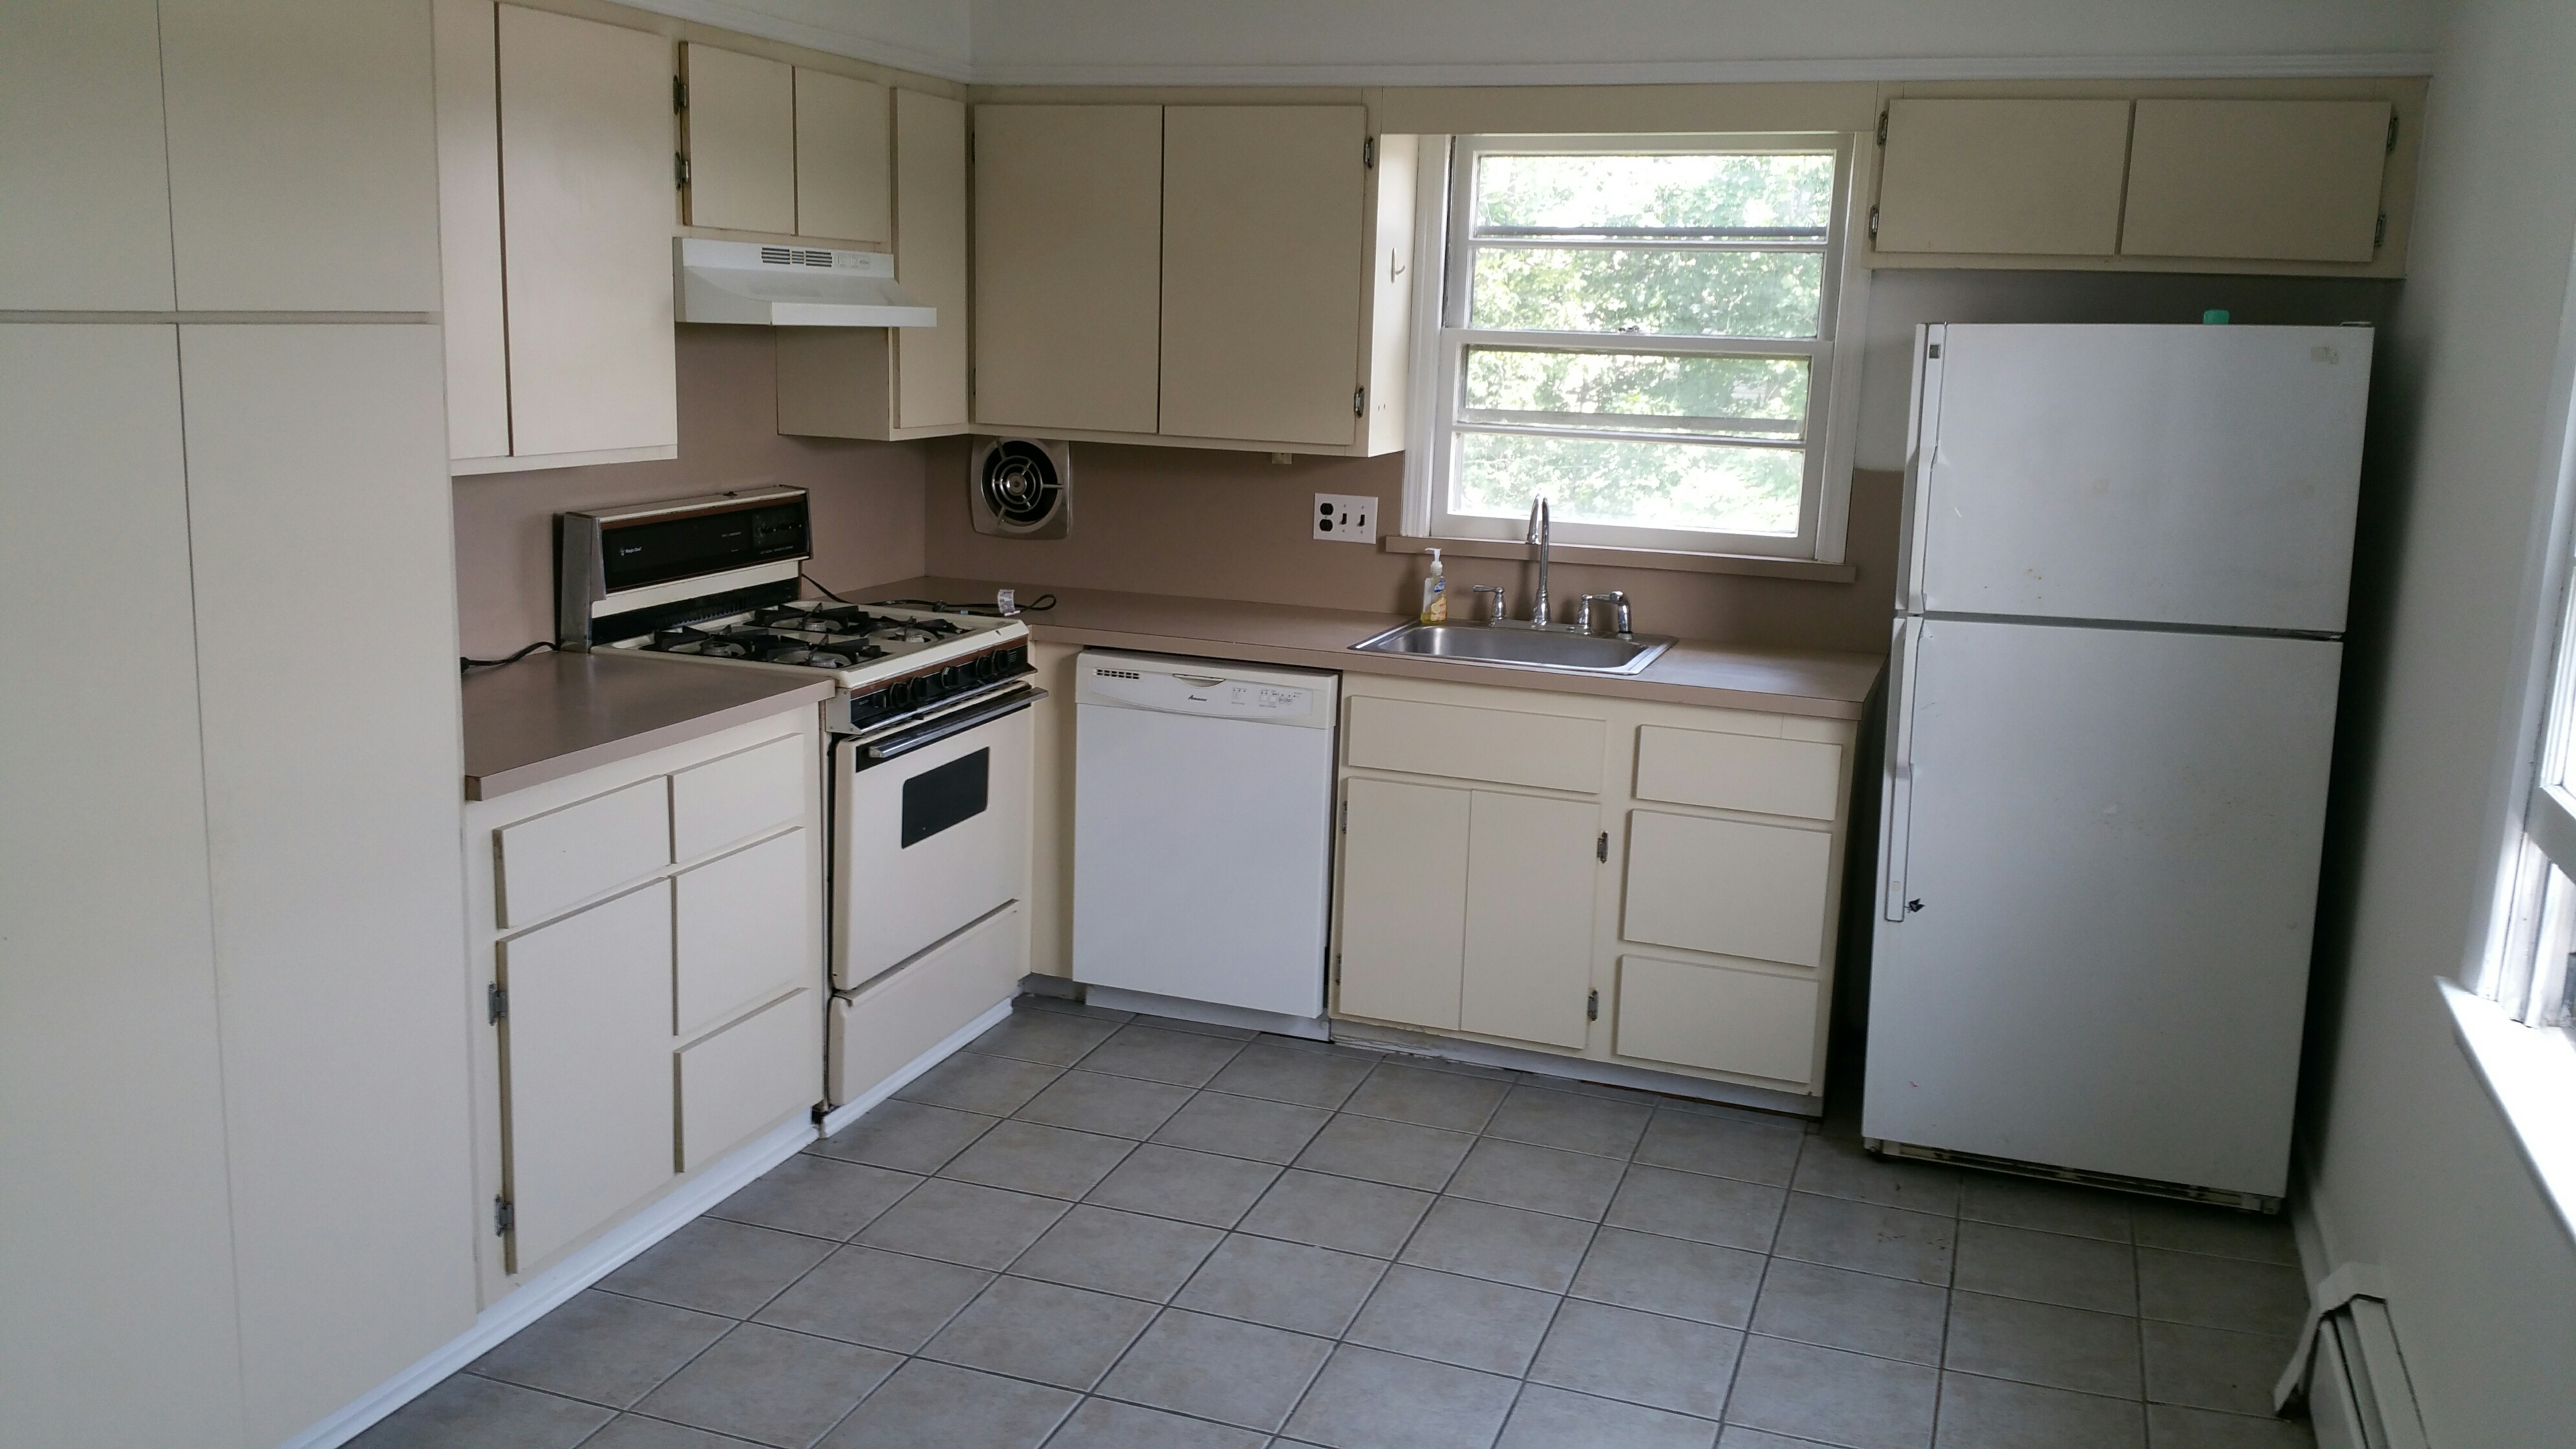 Spacious layout in a well kept 2 family.  2 Bedrooms plus small office/nursery. Many custom features, big kitchen, near train & town and all that sought after Harrison has to offer. Small friendly pet considered- under 25 pounds  Call a Leasing Specialist at 914-834-8200.